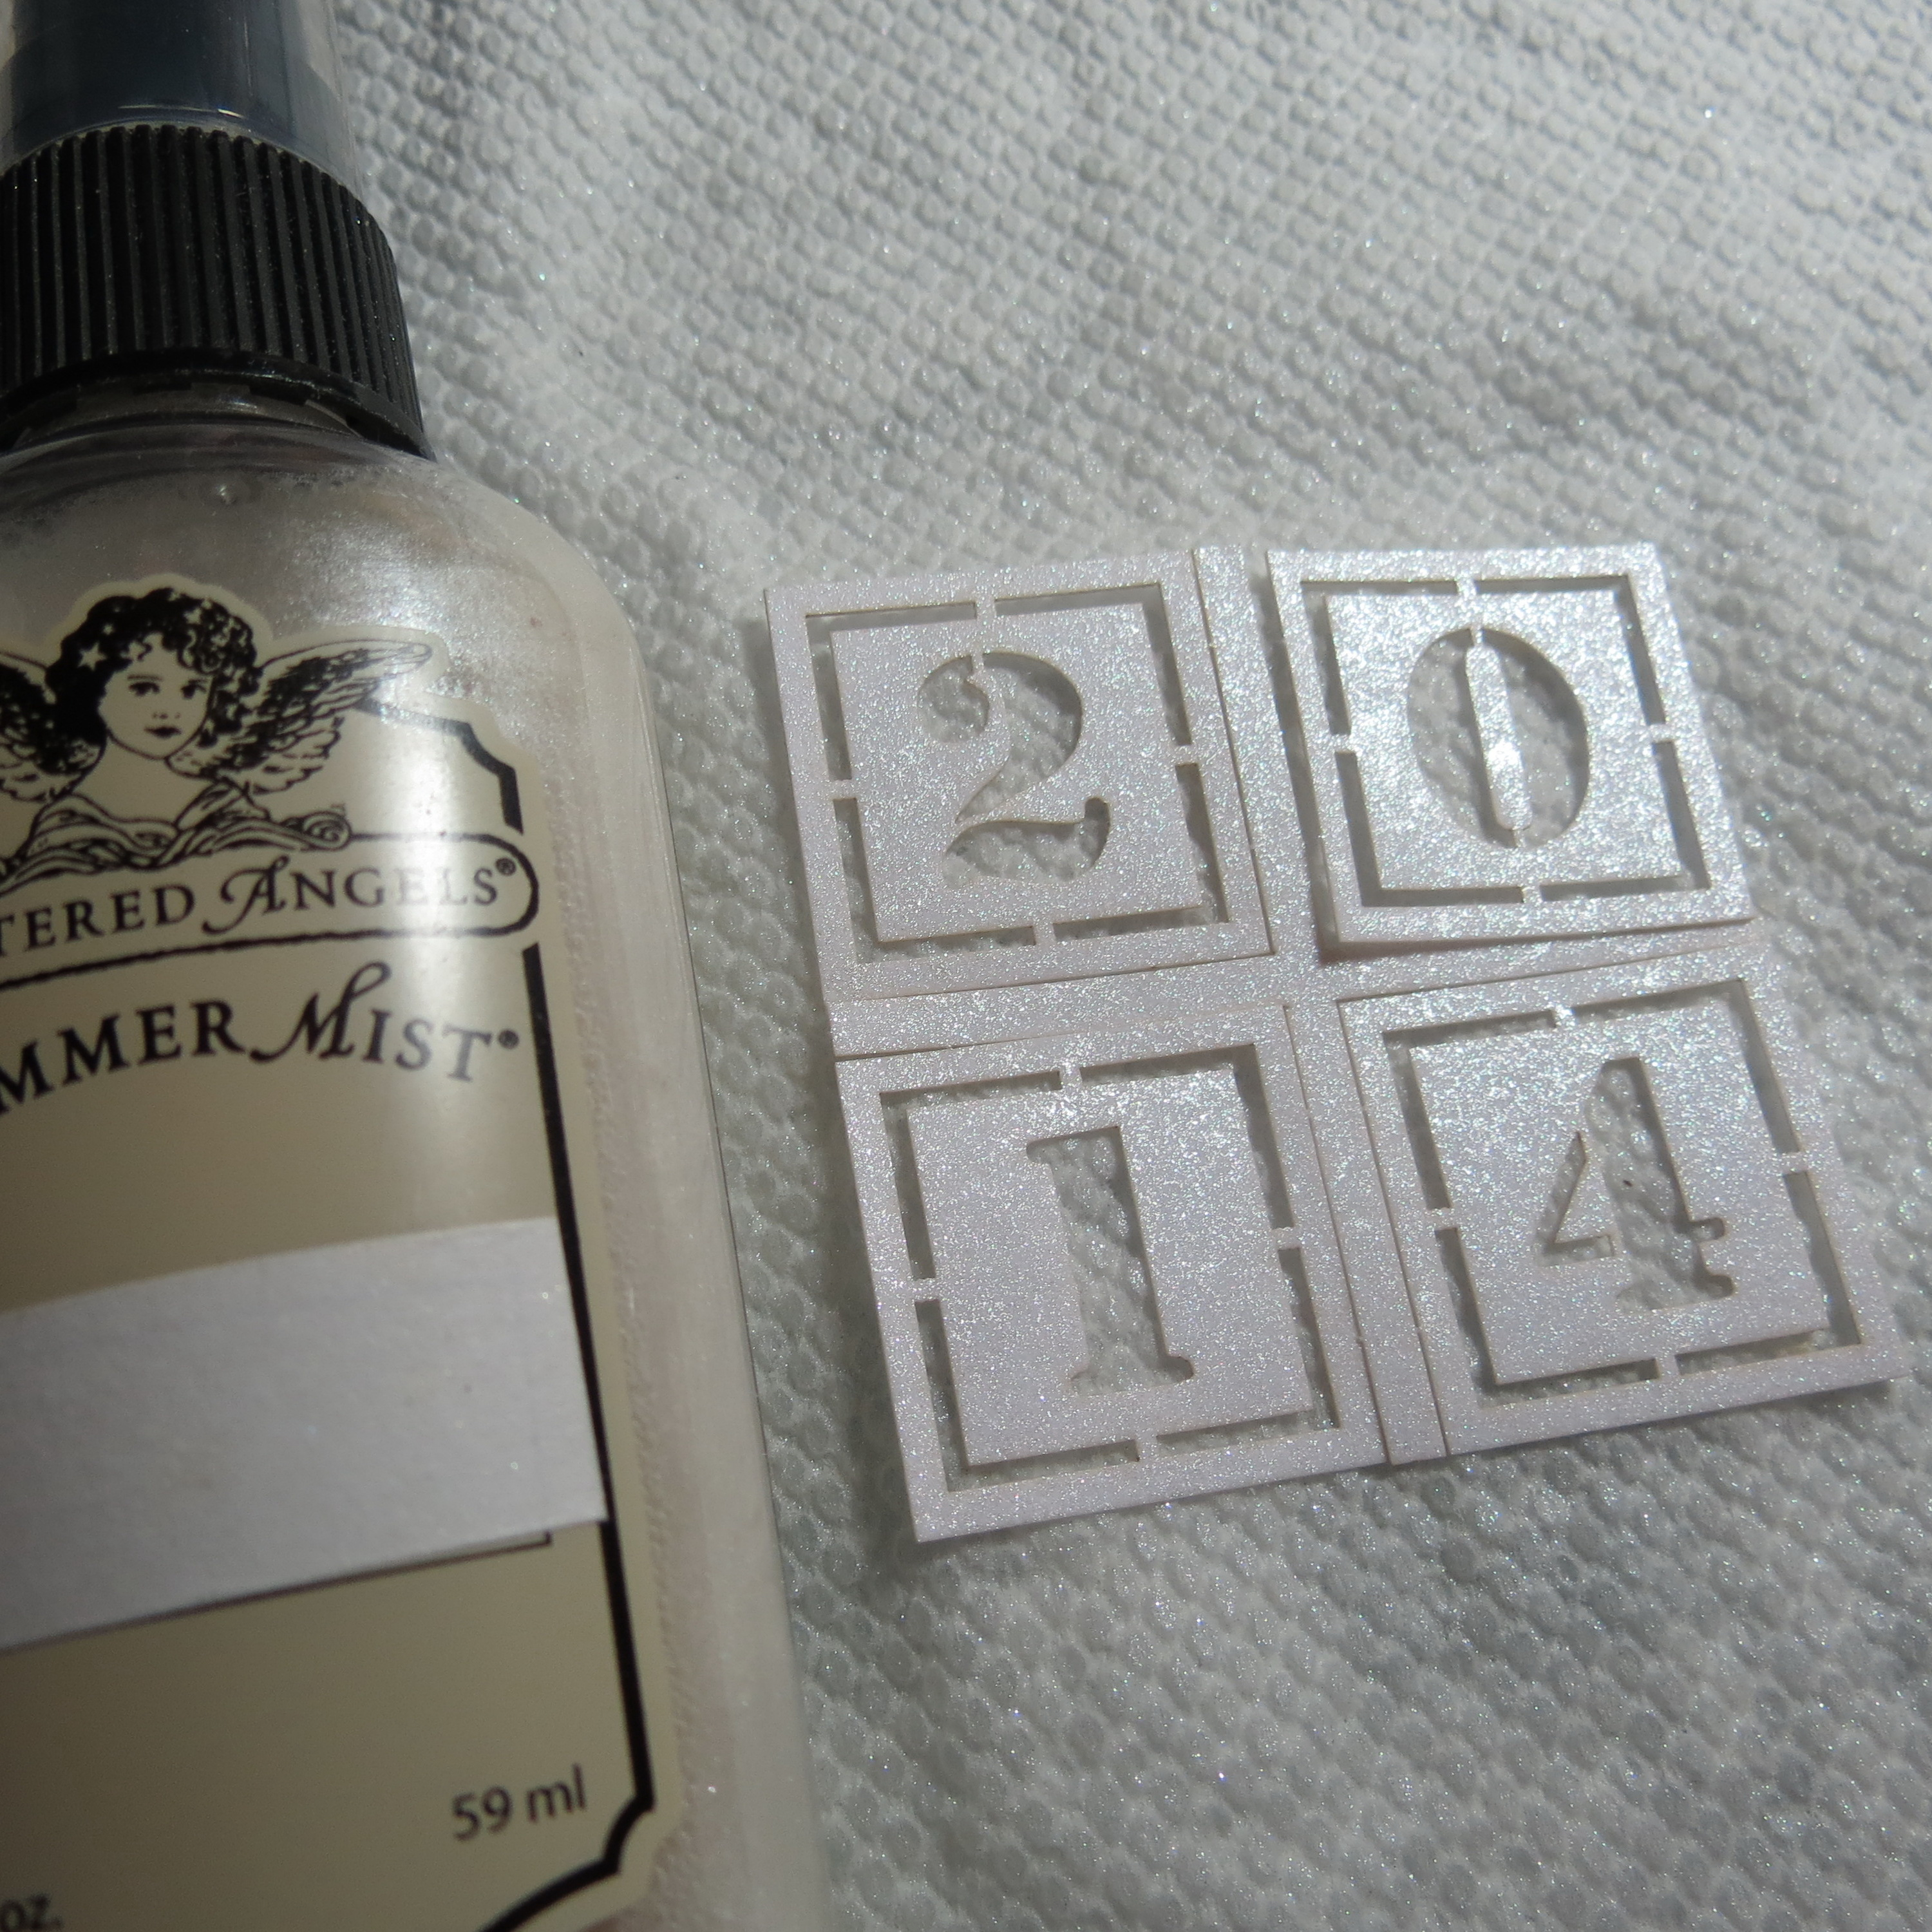 Scrapbook ideas graduation - Now To The Add Ons 1 Squares Of Graduation Patterned Papers Were Used Behind The 2014 Date Cornerstone Blocks The Blocks Were Treated With Tattered